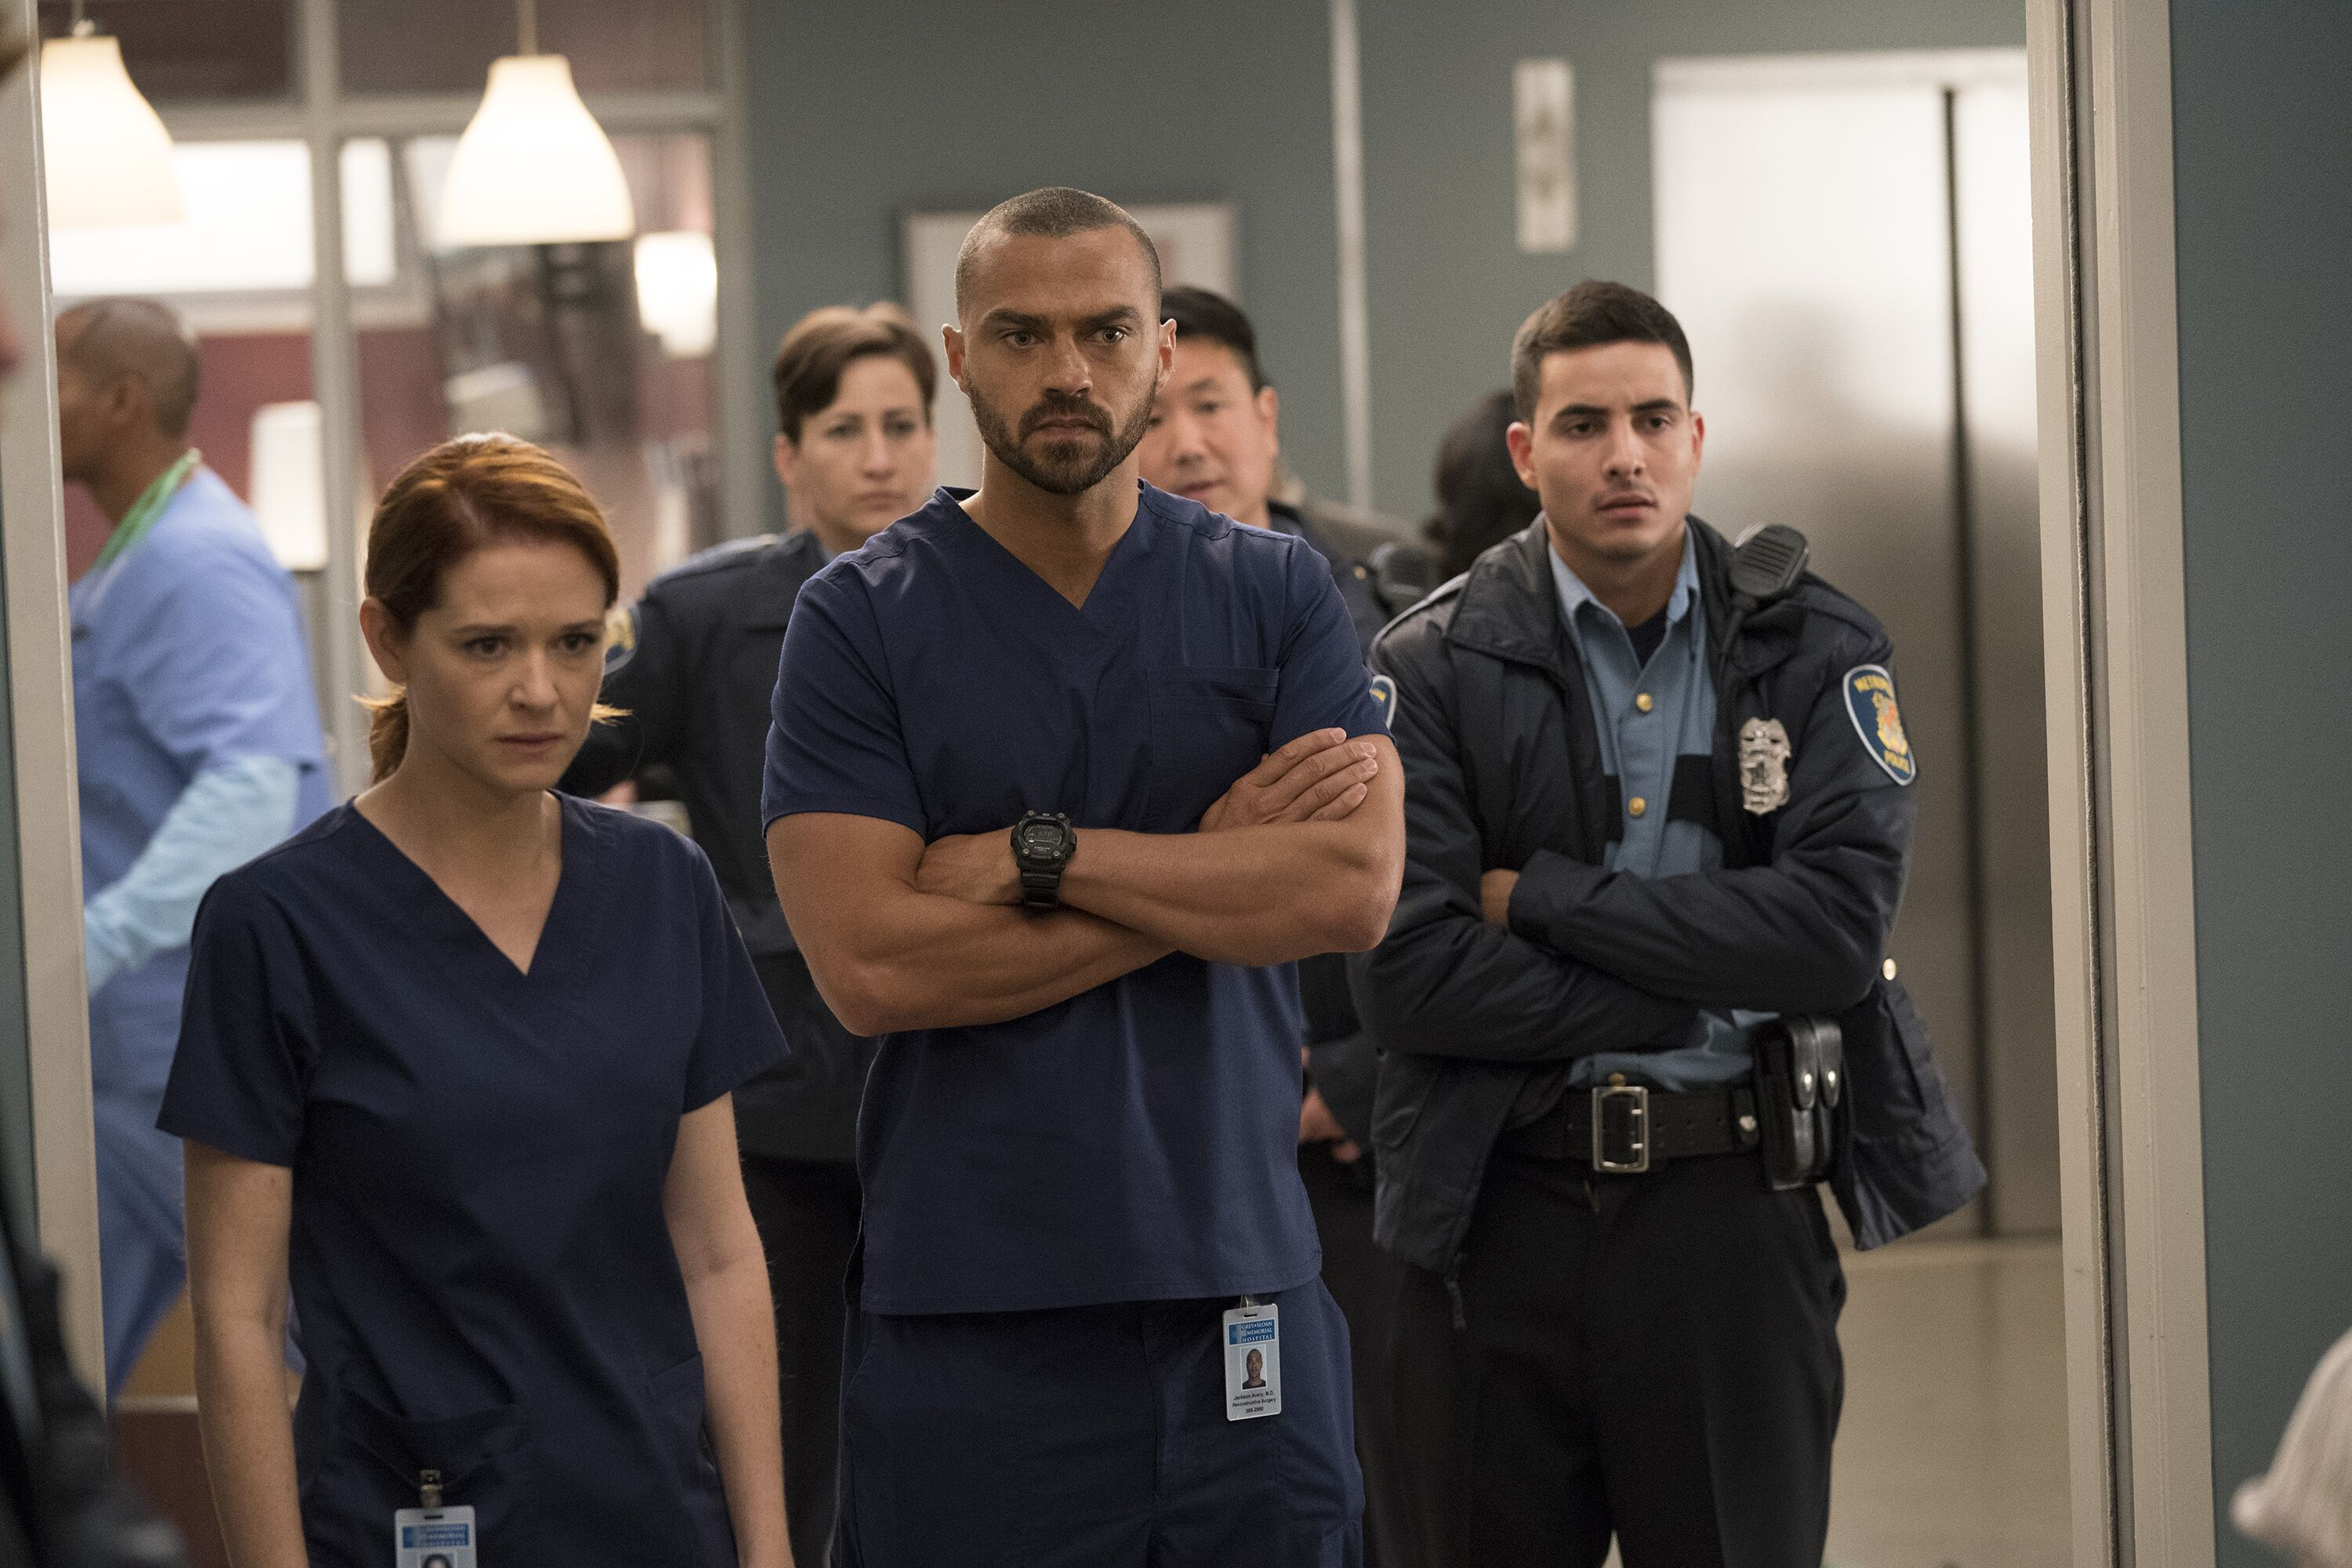 Grey's Anatomy fans push for boycott against Season 14 departures: What you need to know